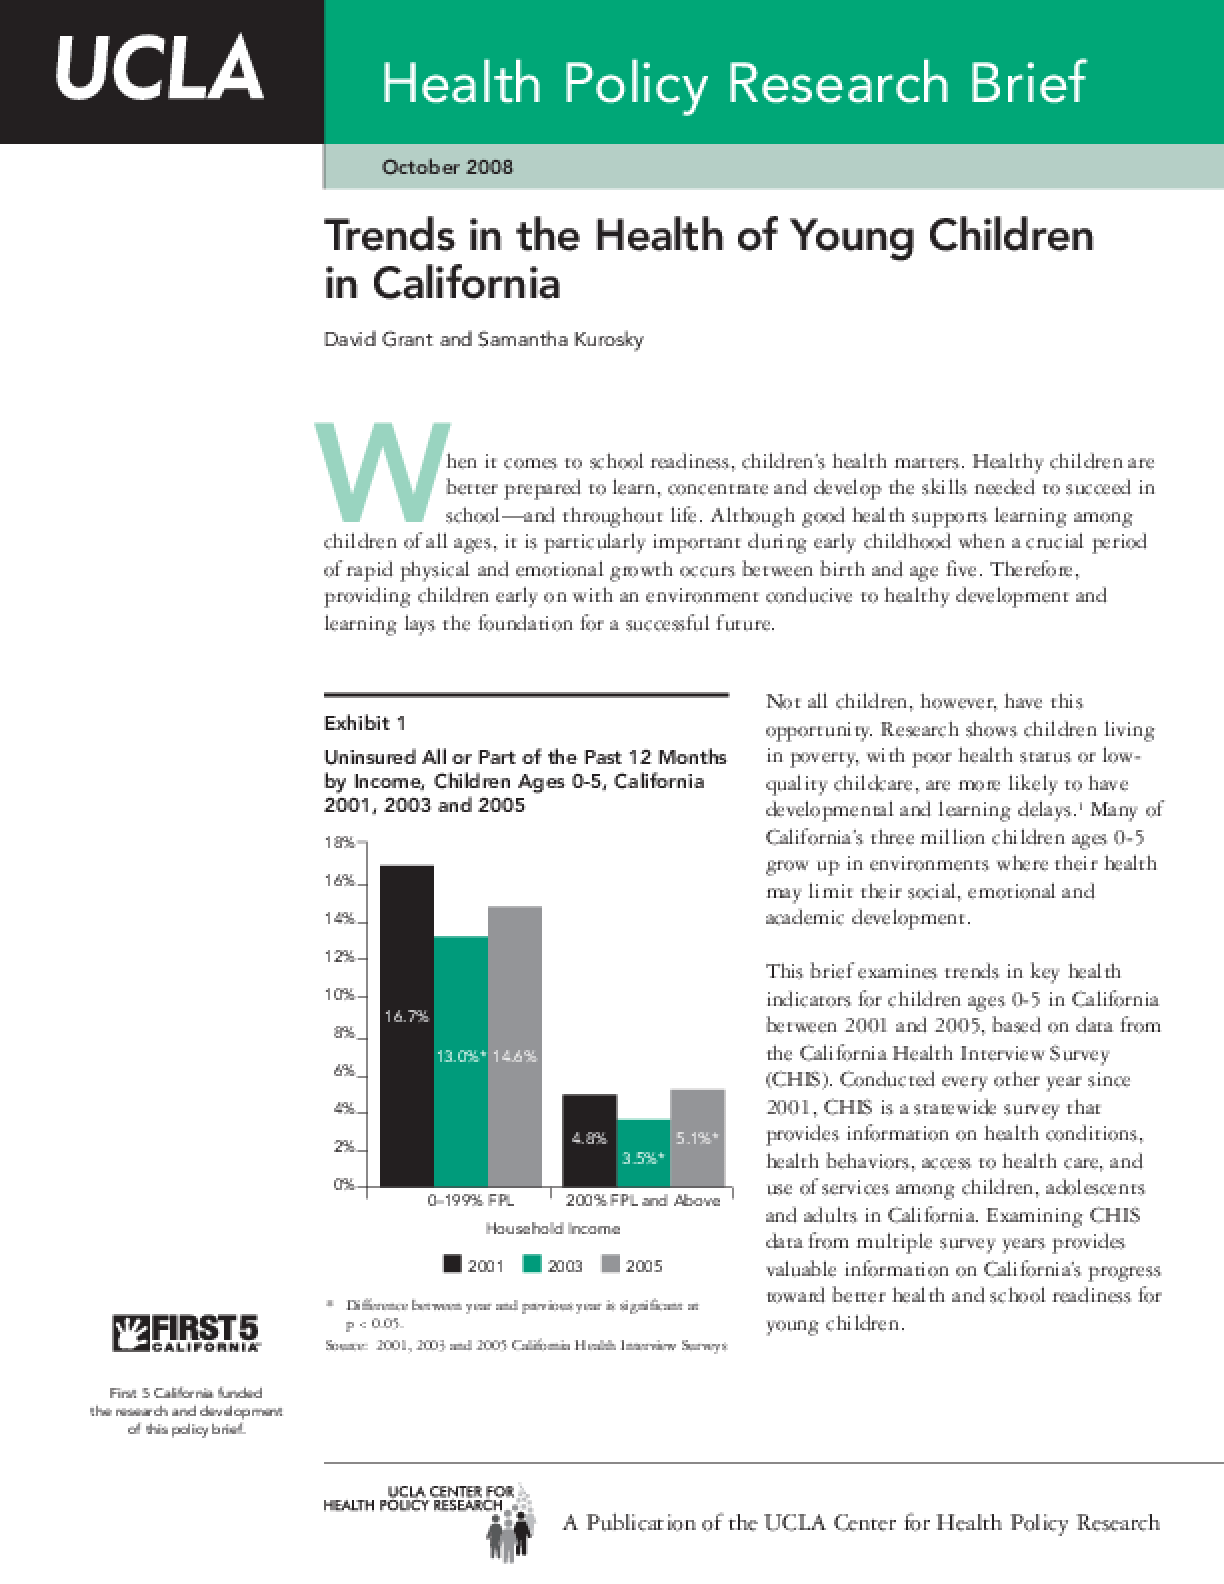 Trends in the Health of Young Children in California